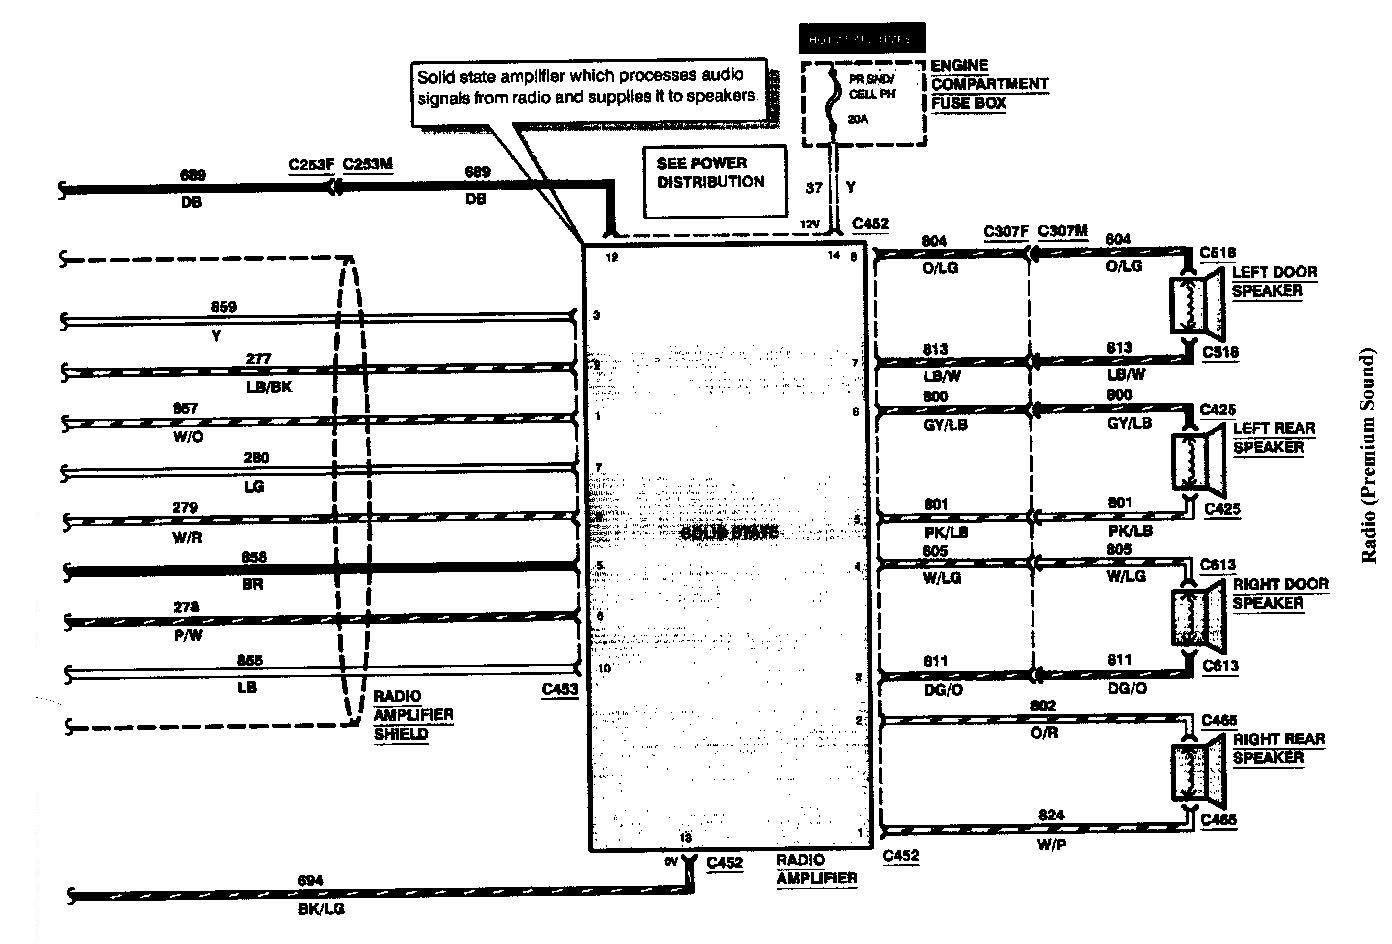 95Mark8 Premium Sound Wiring2 95 mark 8 jbl wiring diagram needed lincolns online message forum 2003 lincoln town car wiring diagram at bakdesigns.co